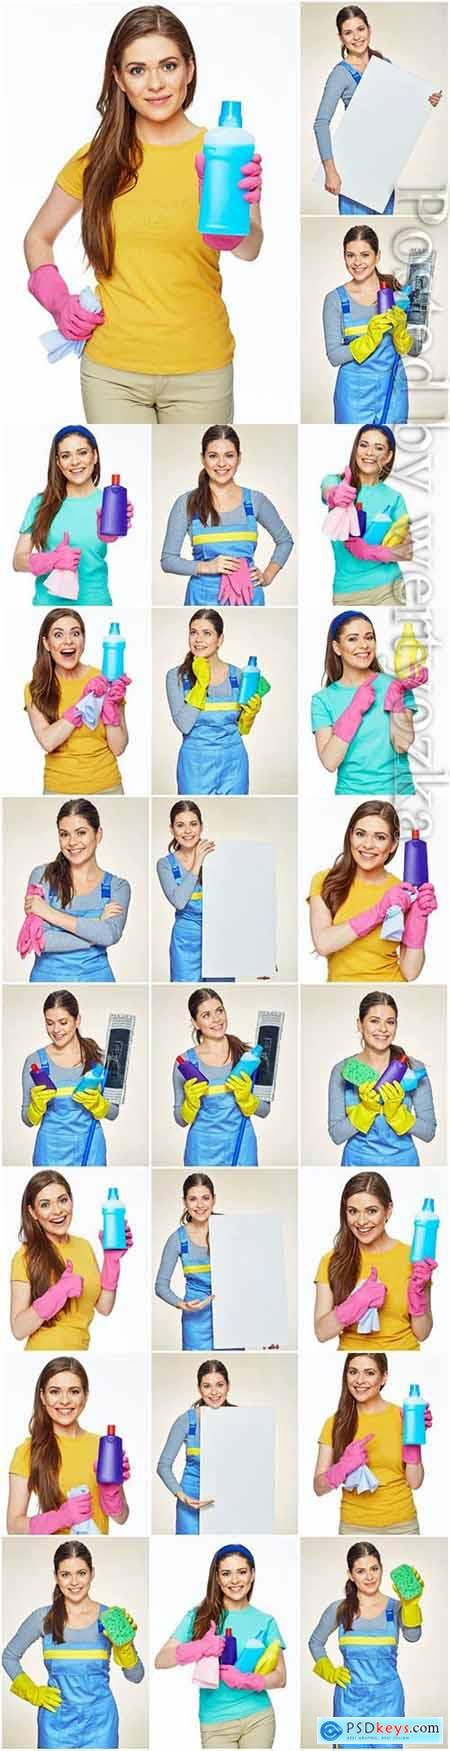 Cleaning service, girl with cleaning products stock photo